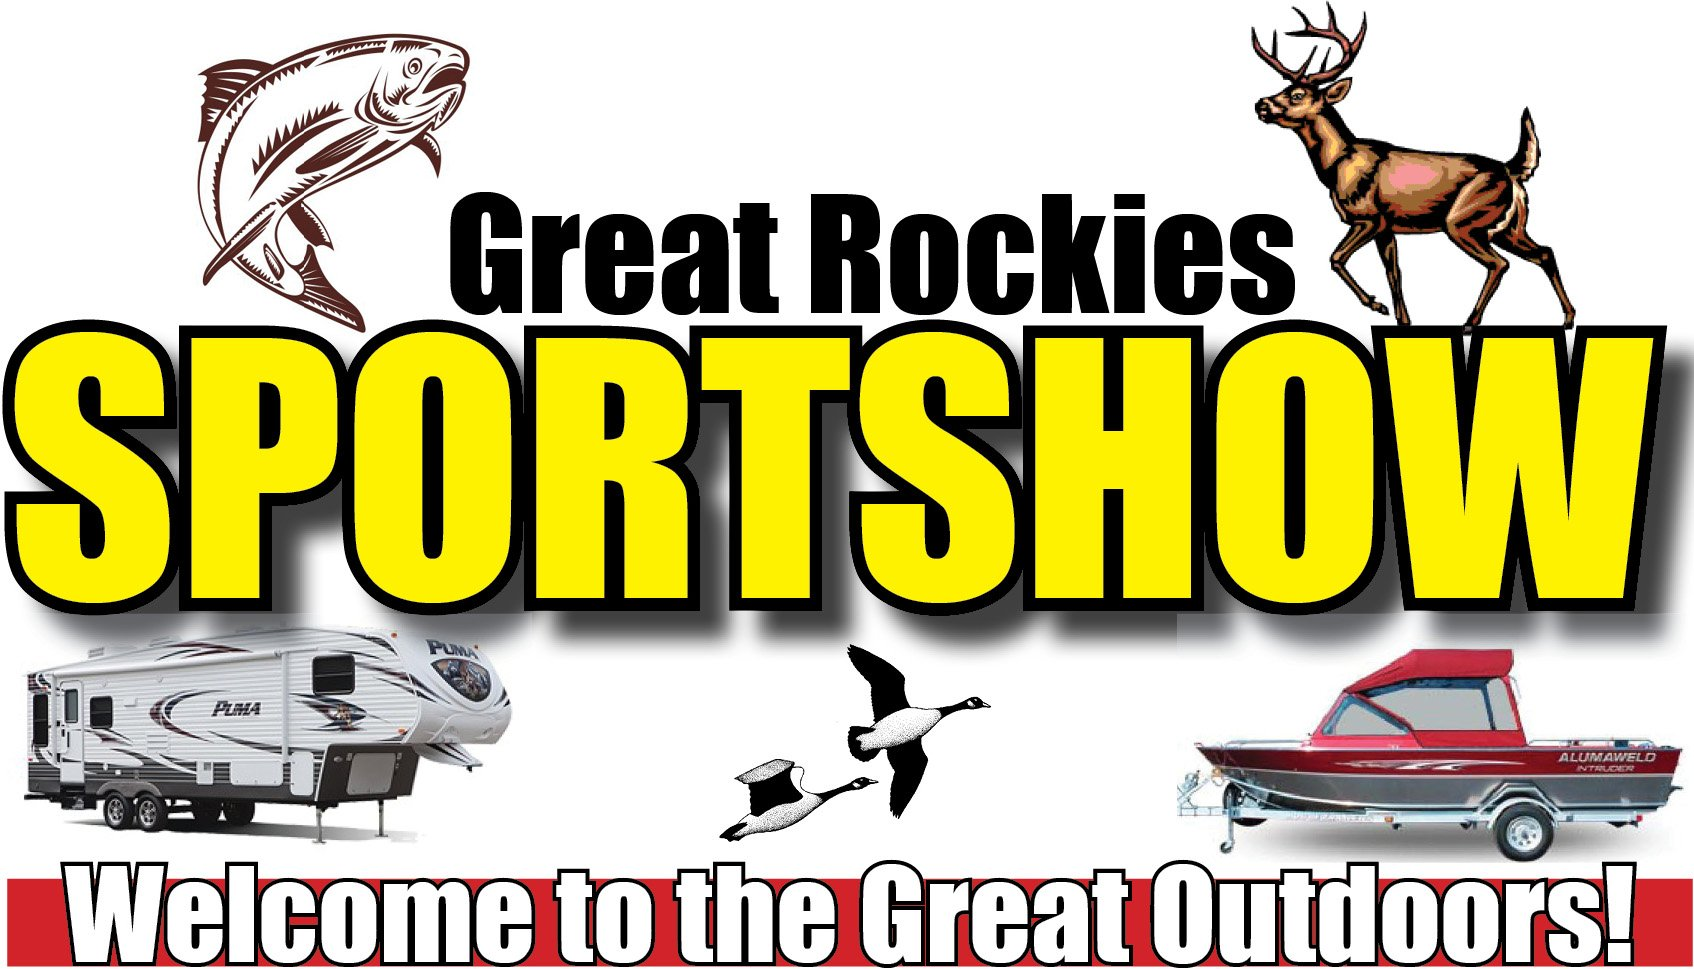 Montana's Great Rockies Sportshow and New Mexico Sportsmen's Show